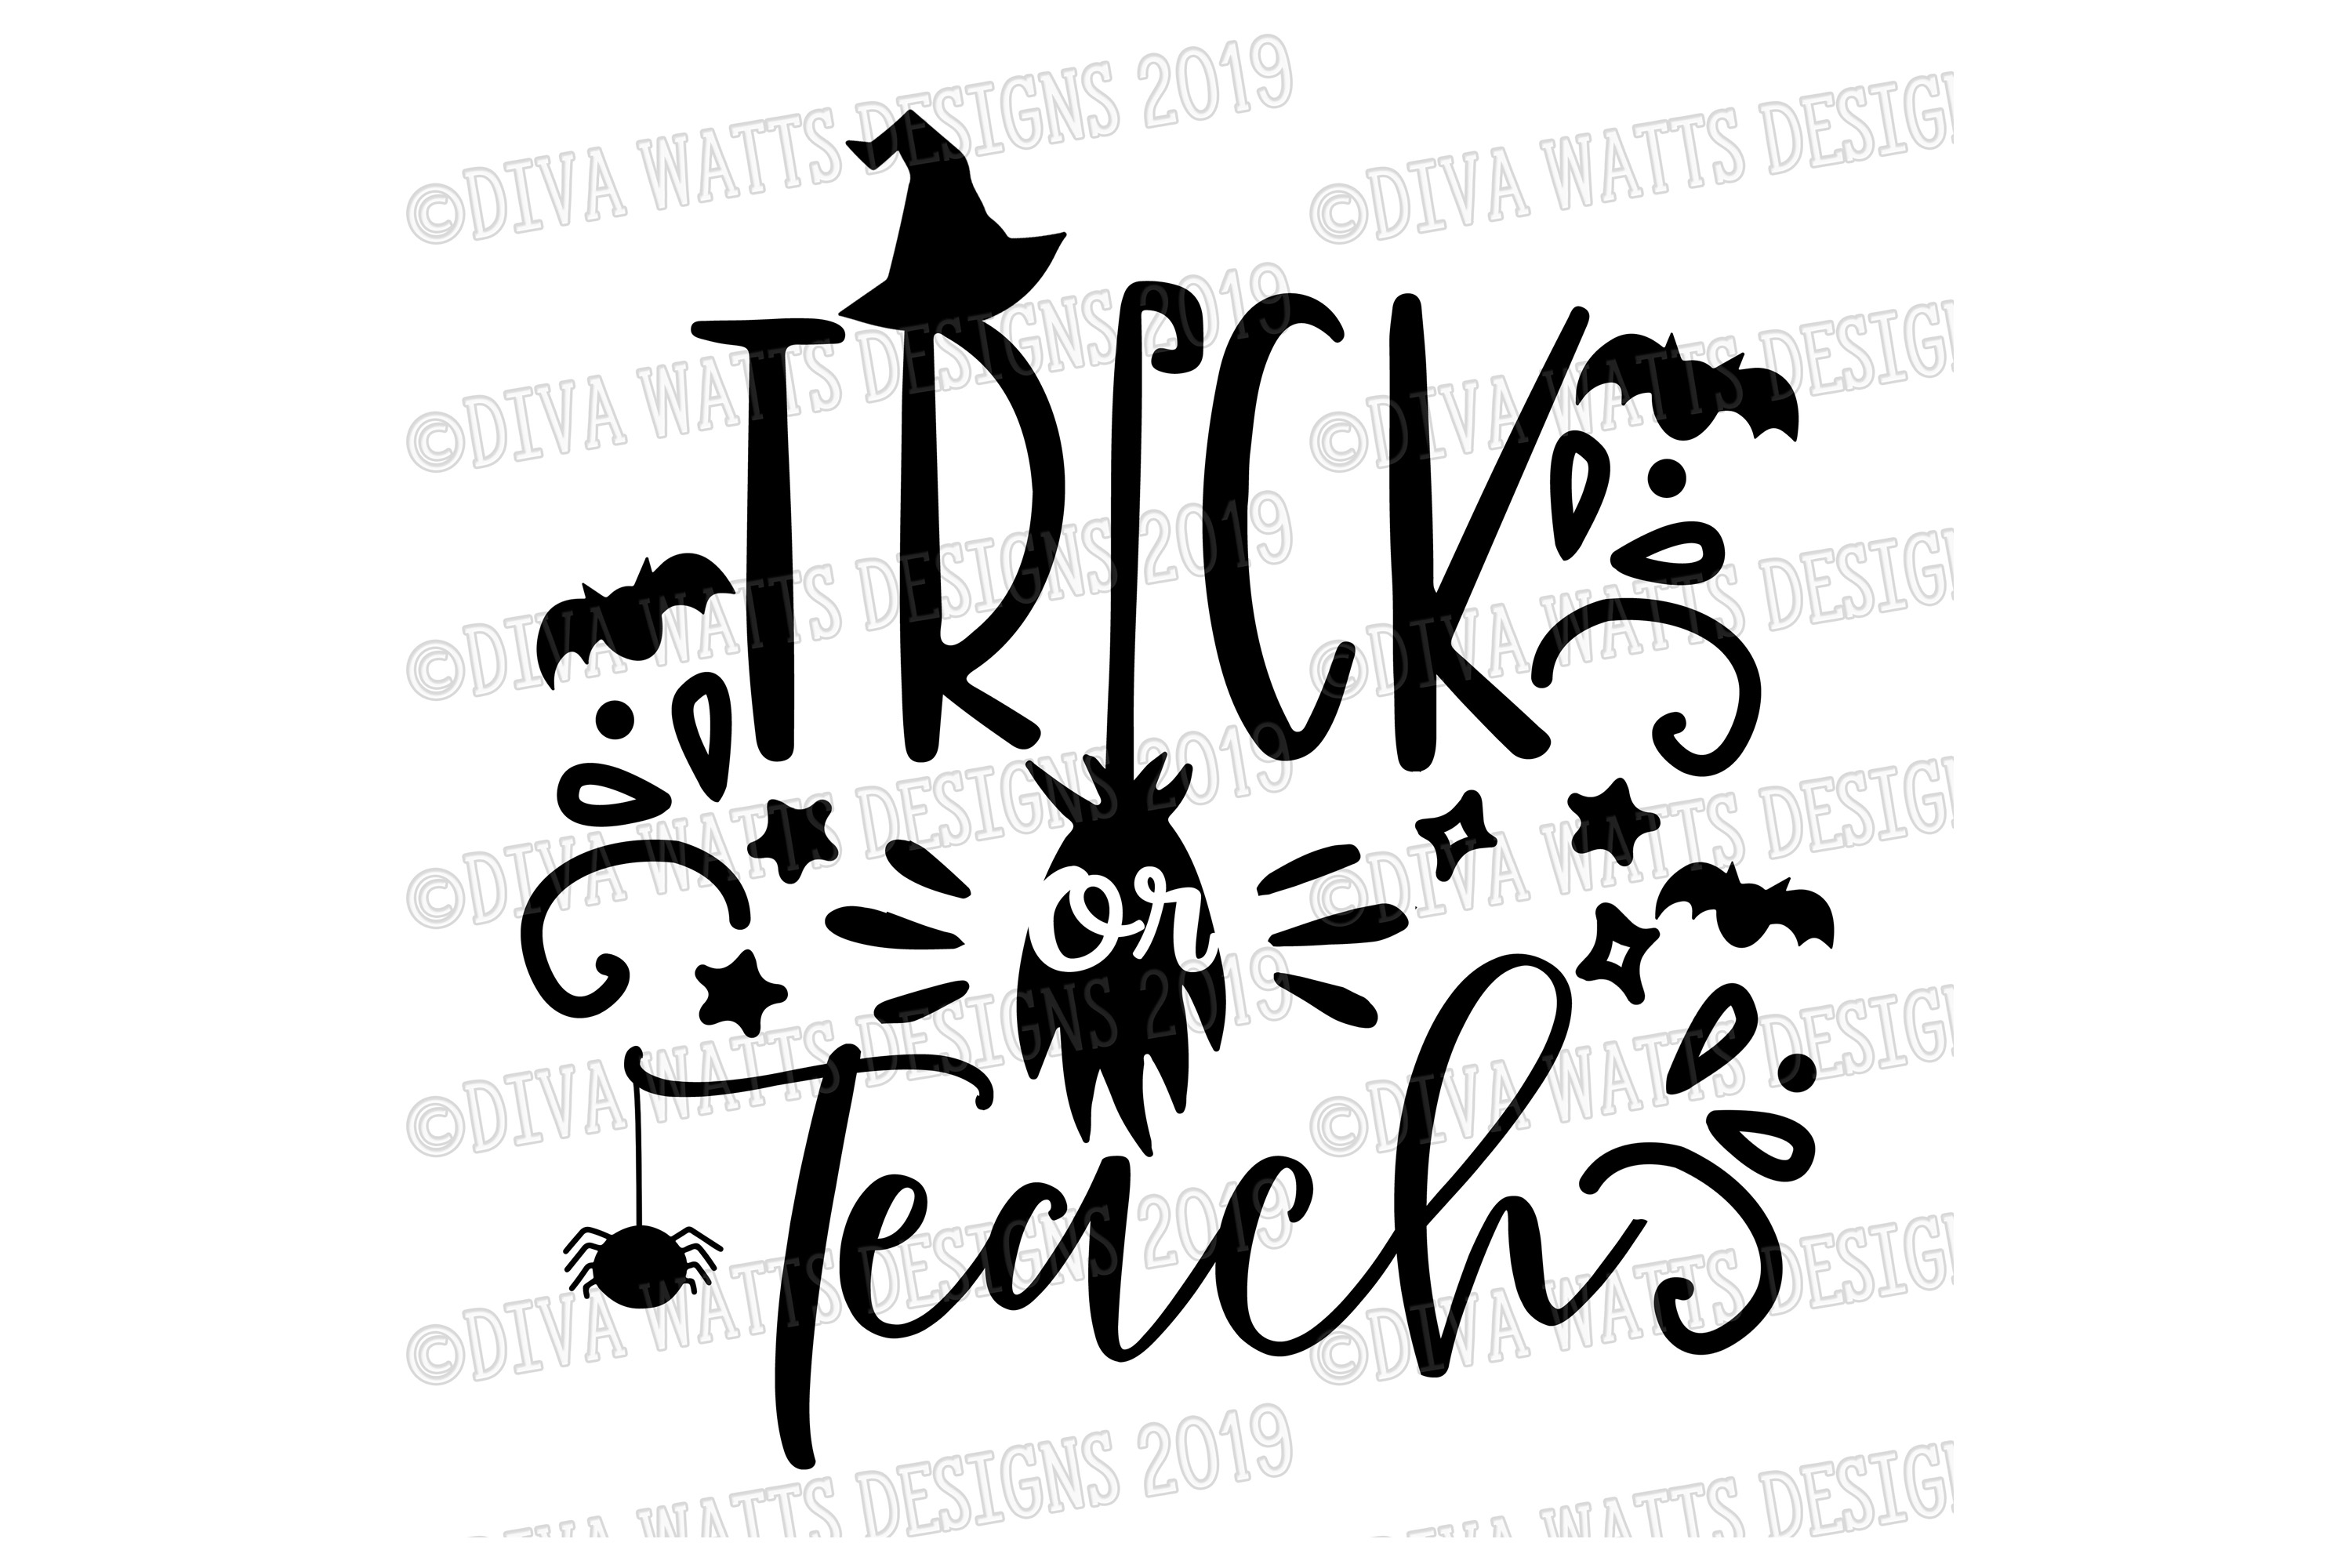 Trick or Teach Halloween Cutting File for Shirt or Sign example image 2